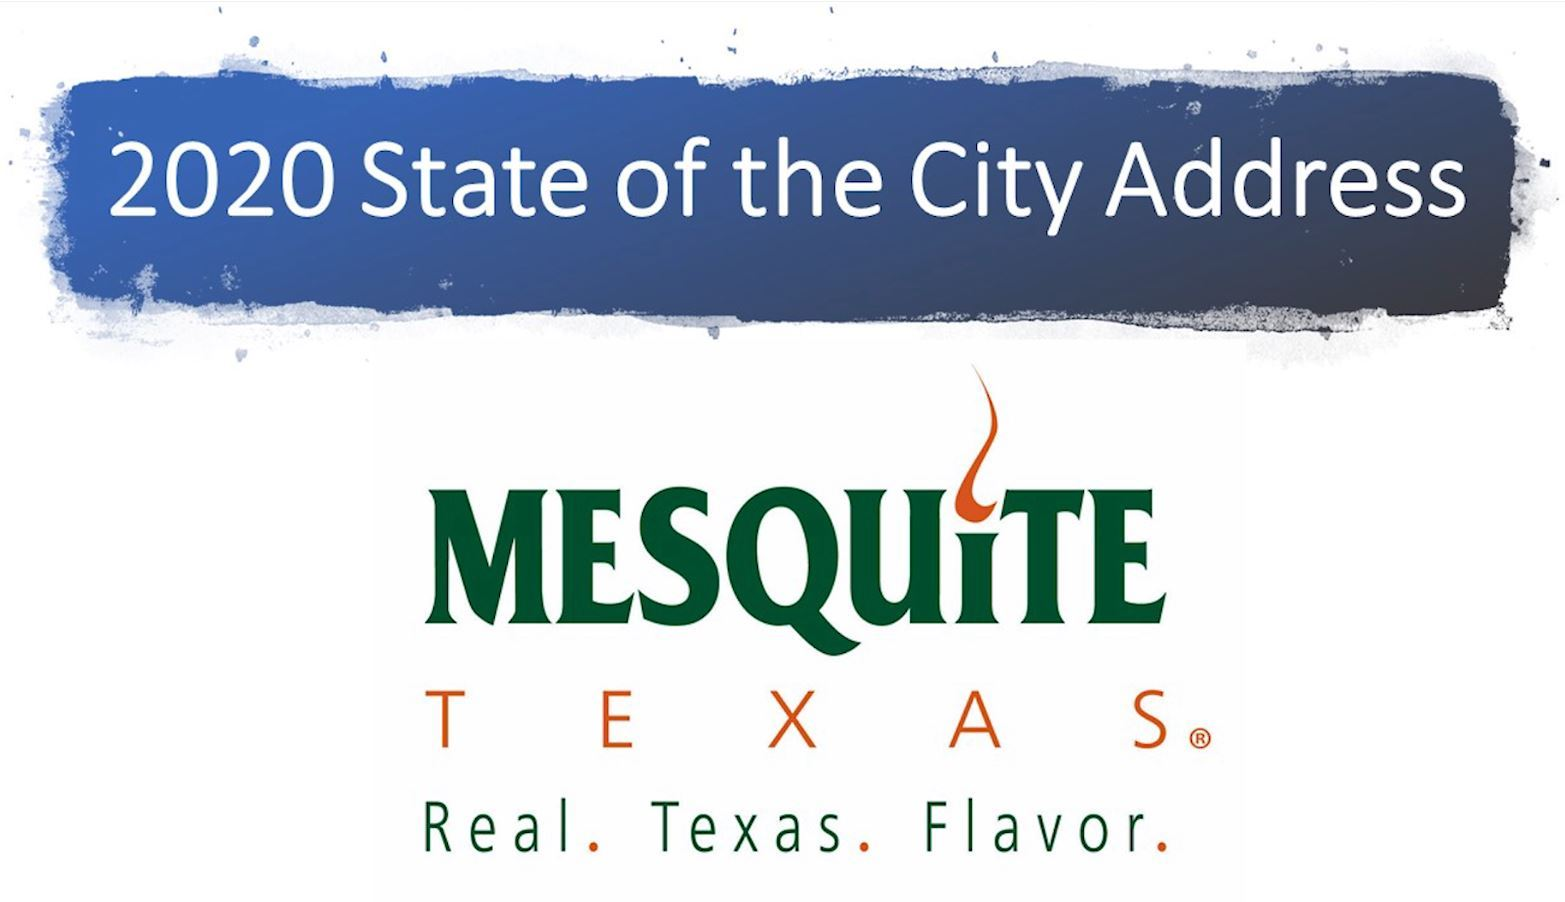 State of the City Tile